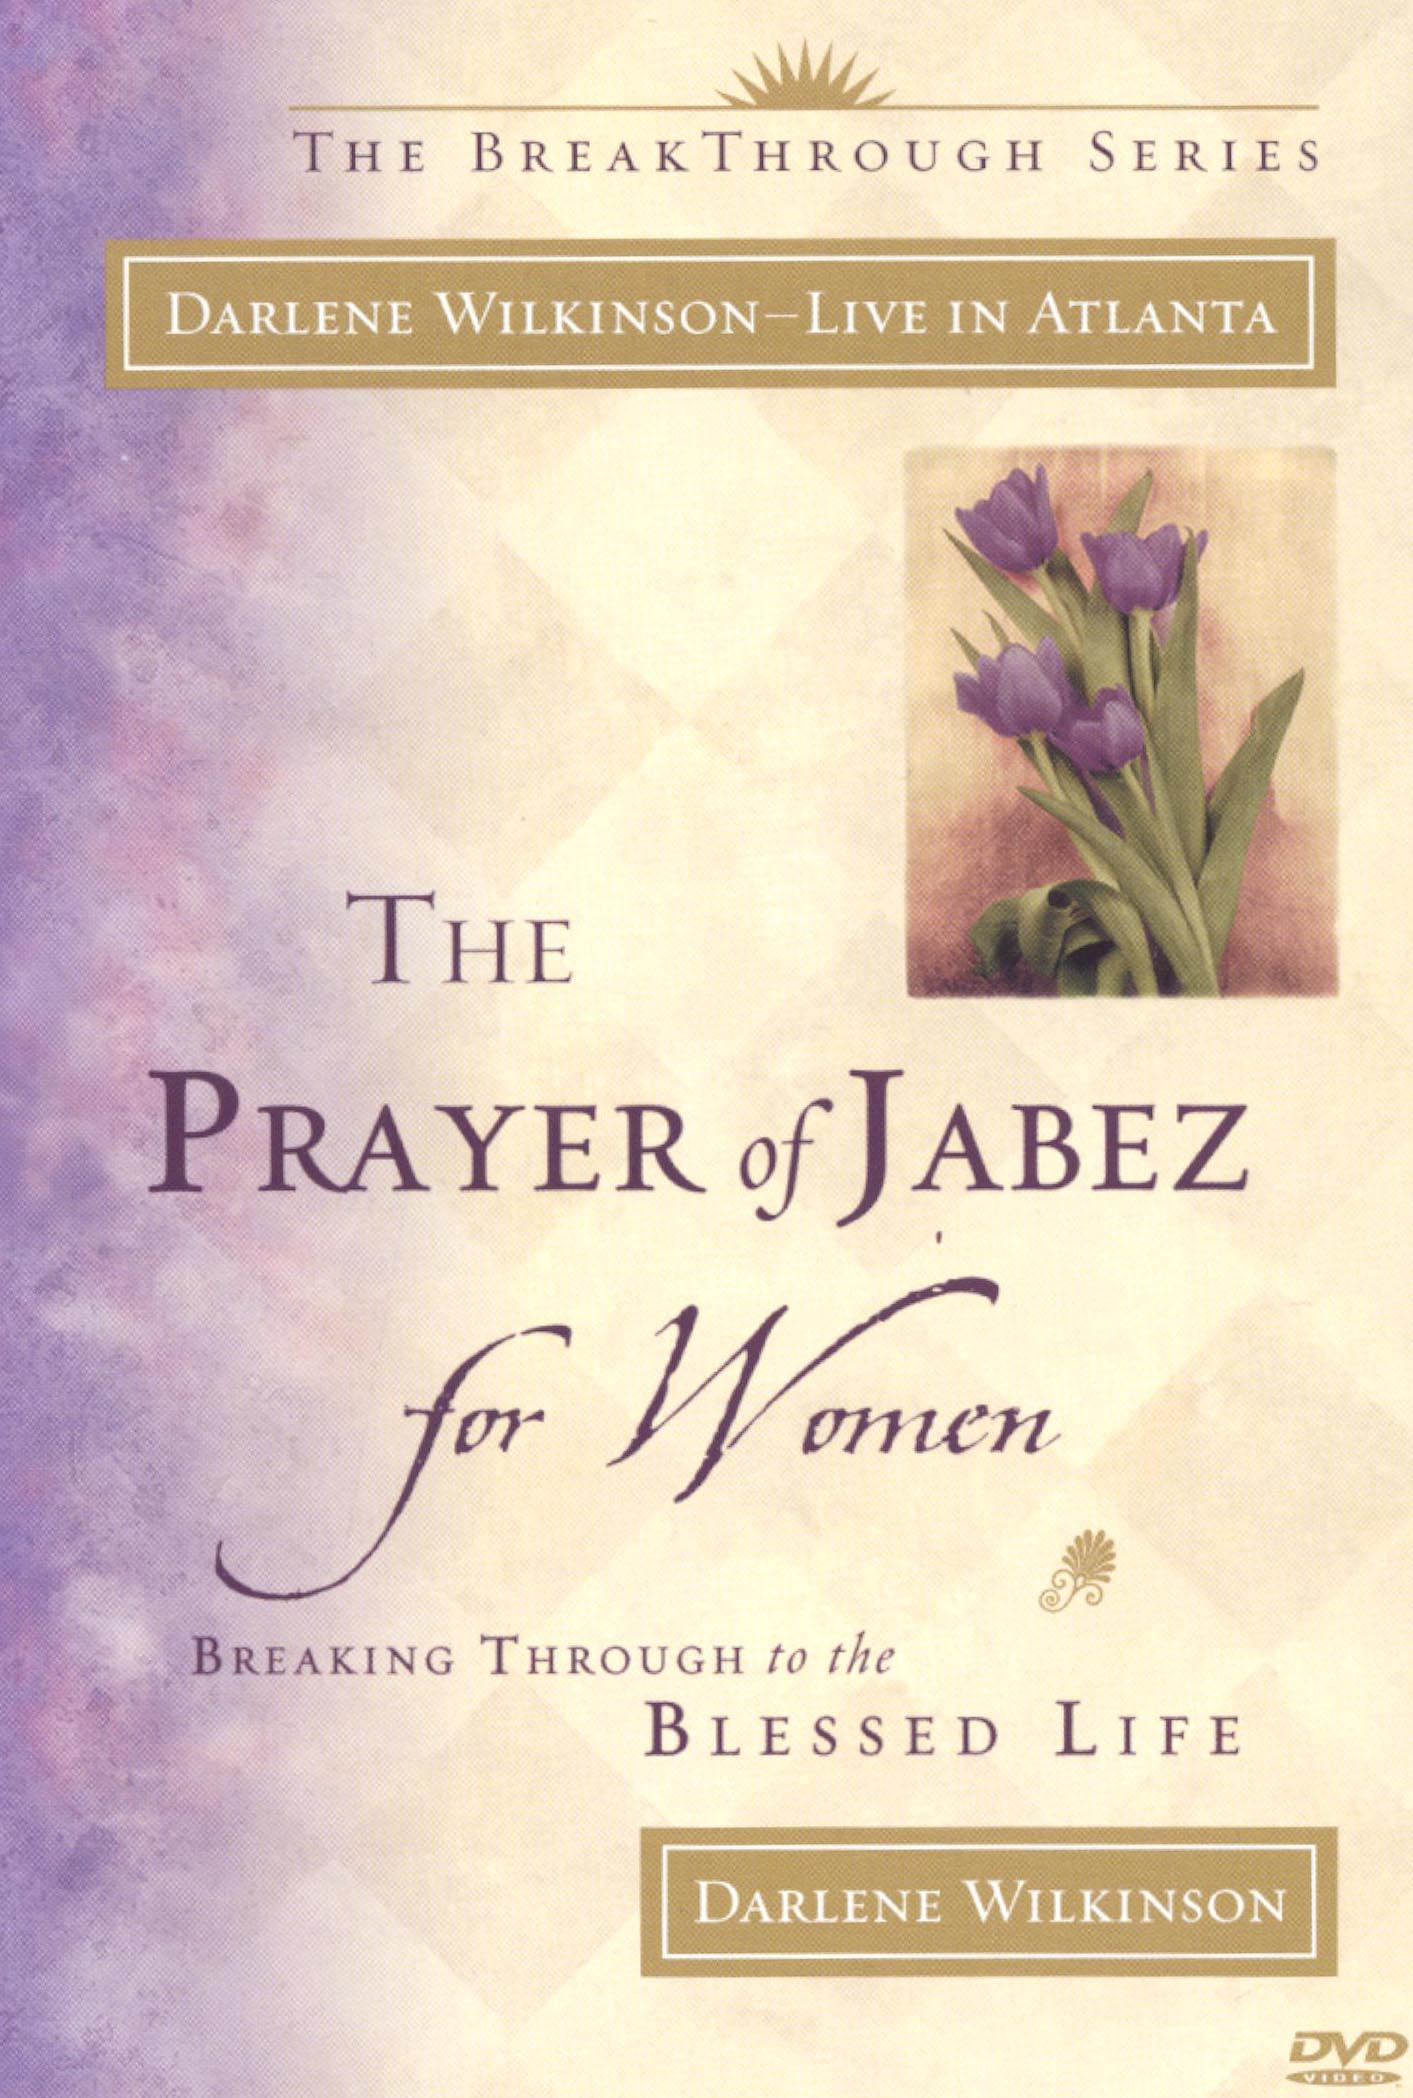 Darlene Wilkinson: The Prayer of Jabez for Women